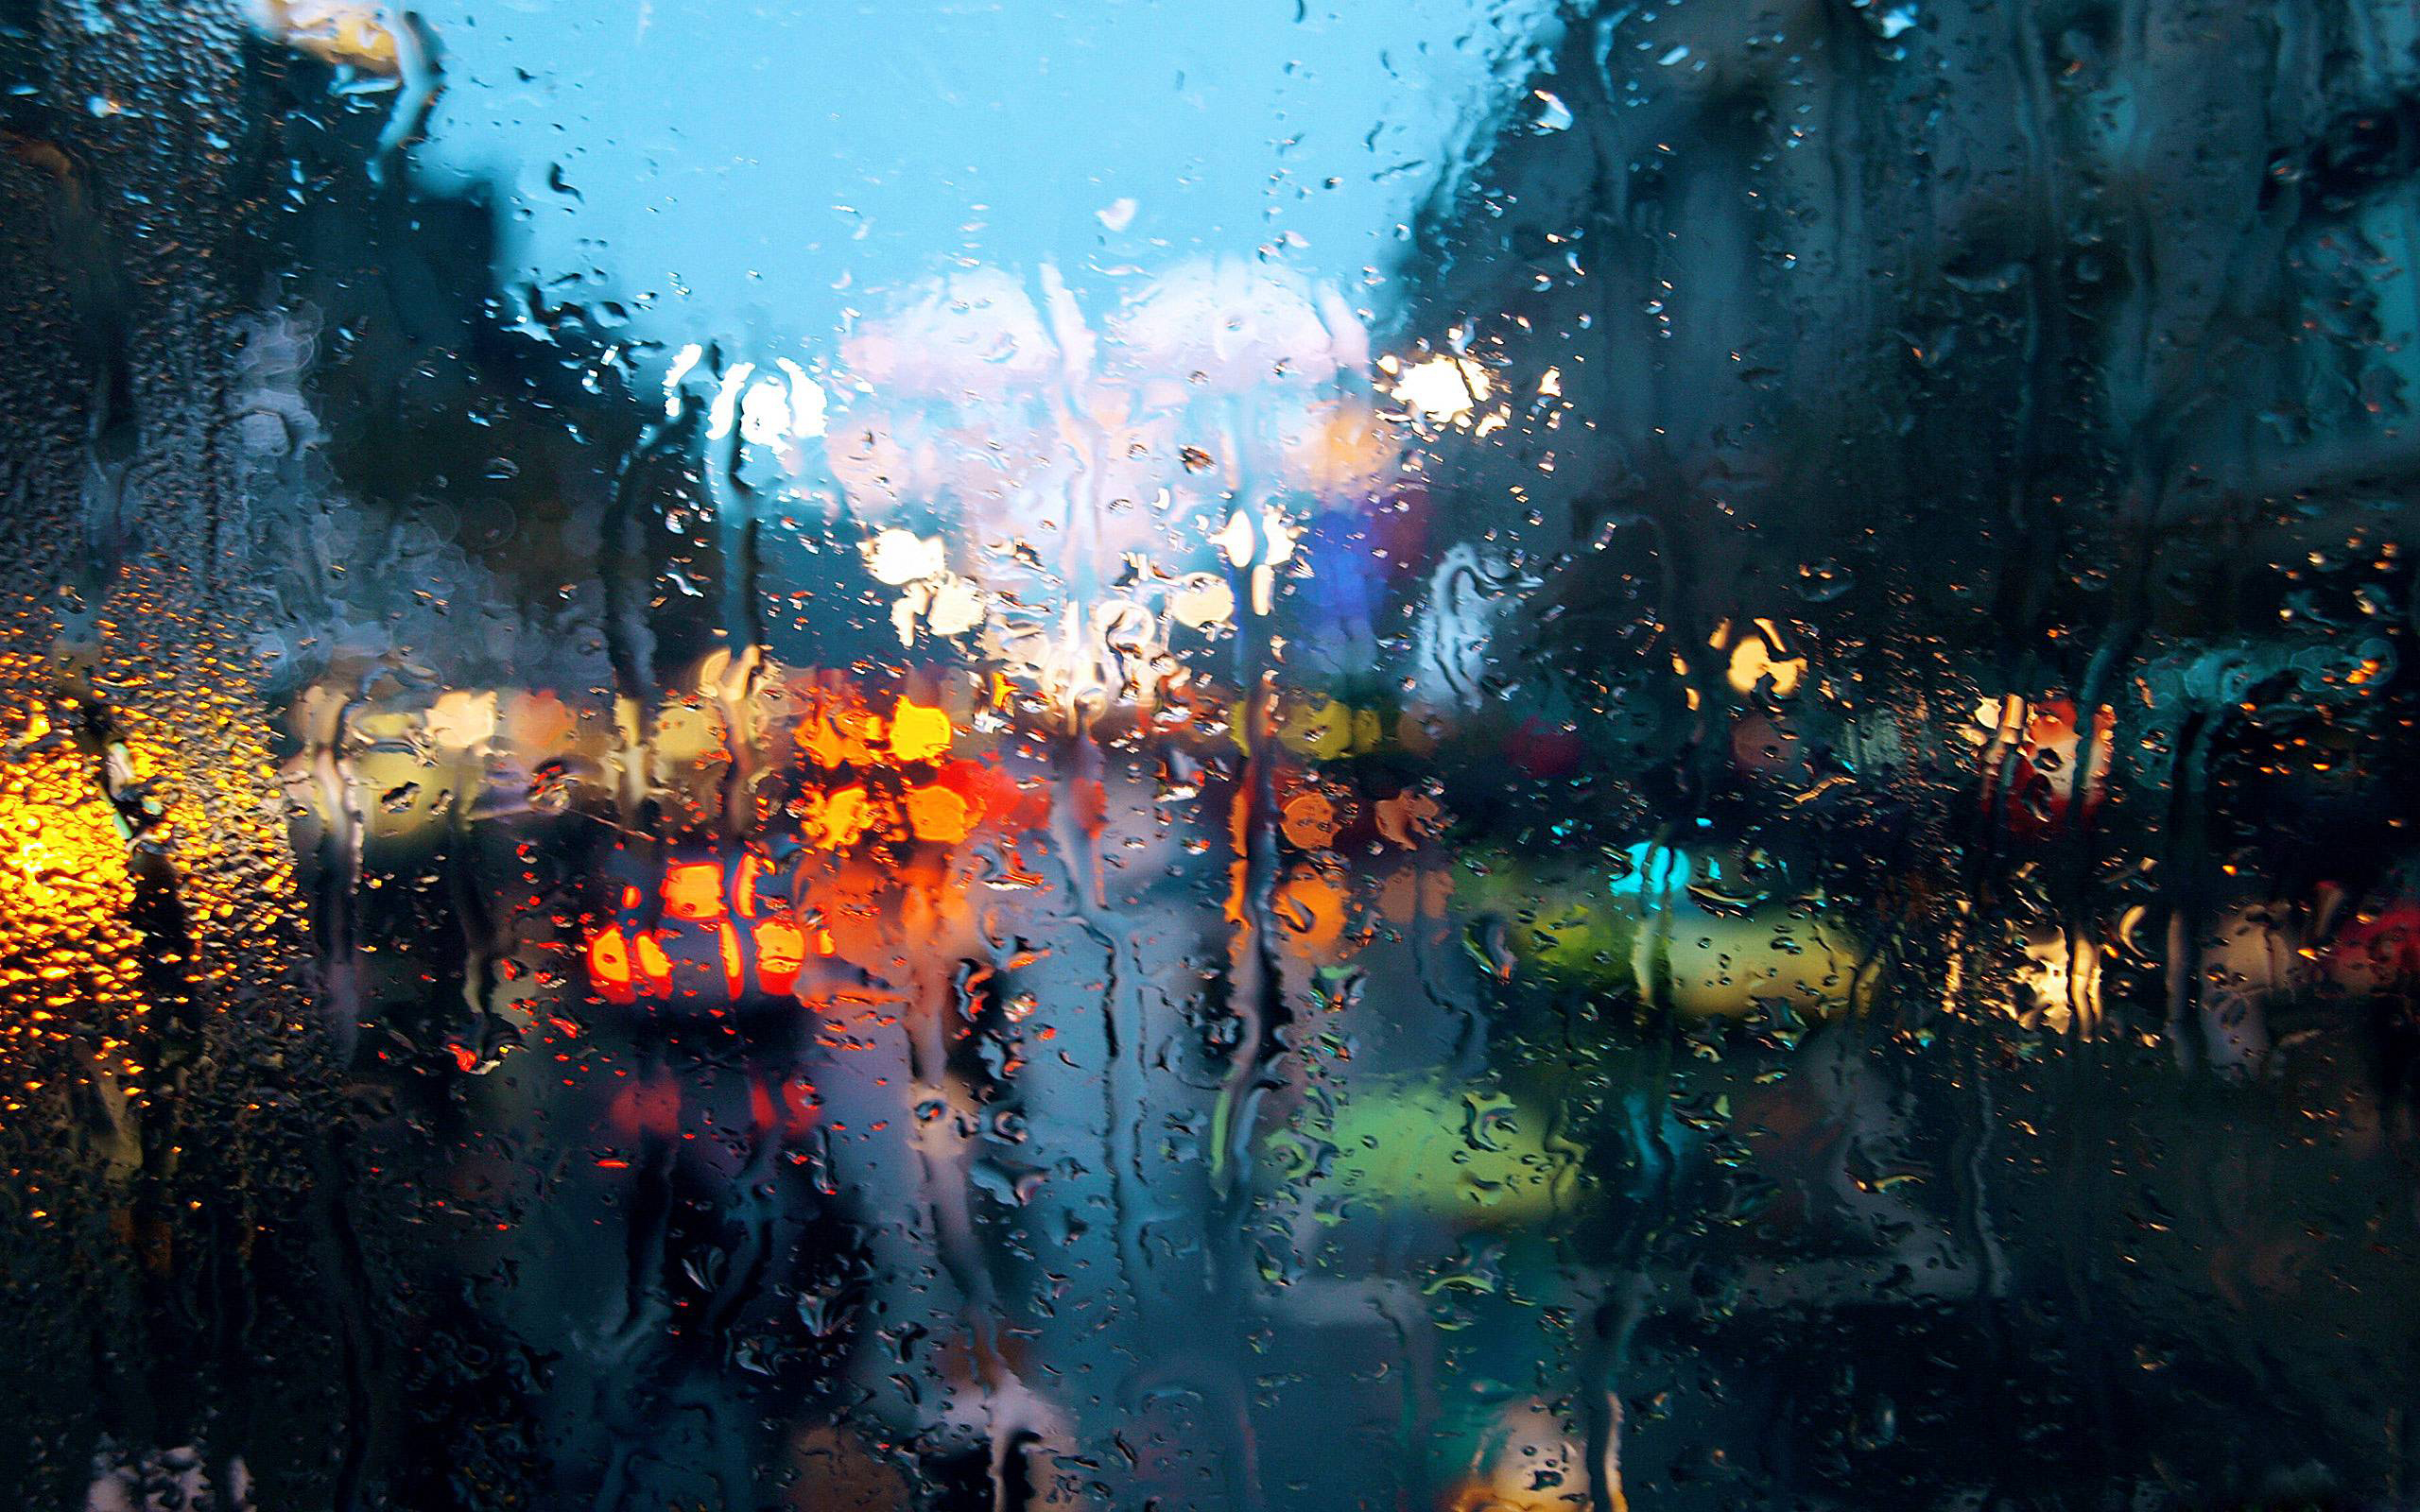 Wallpaper Rainy